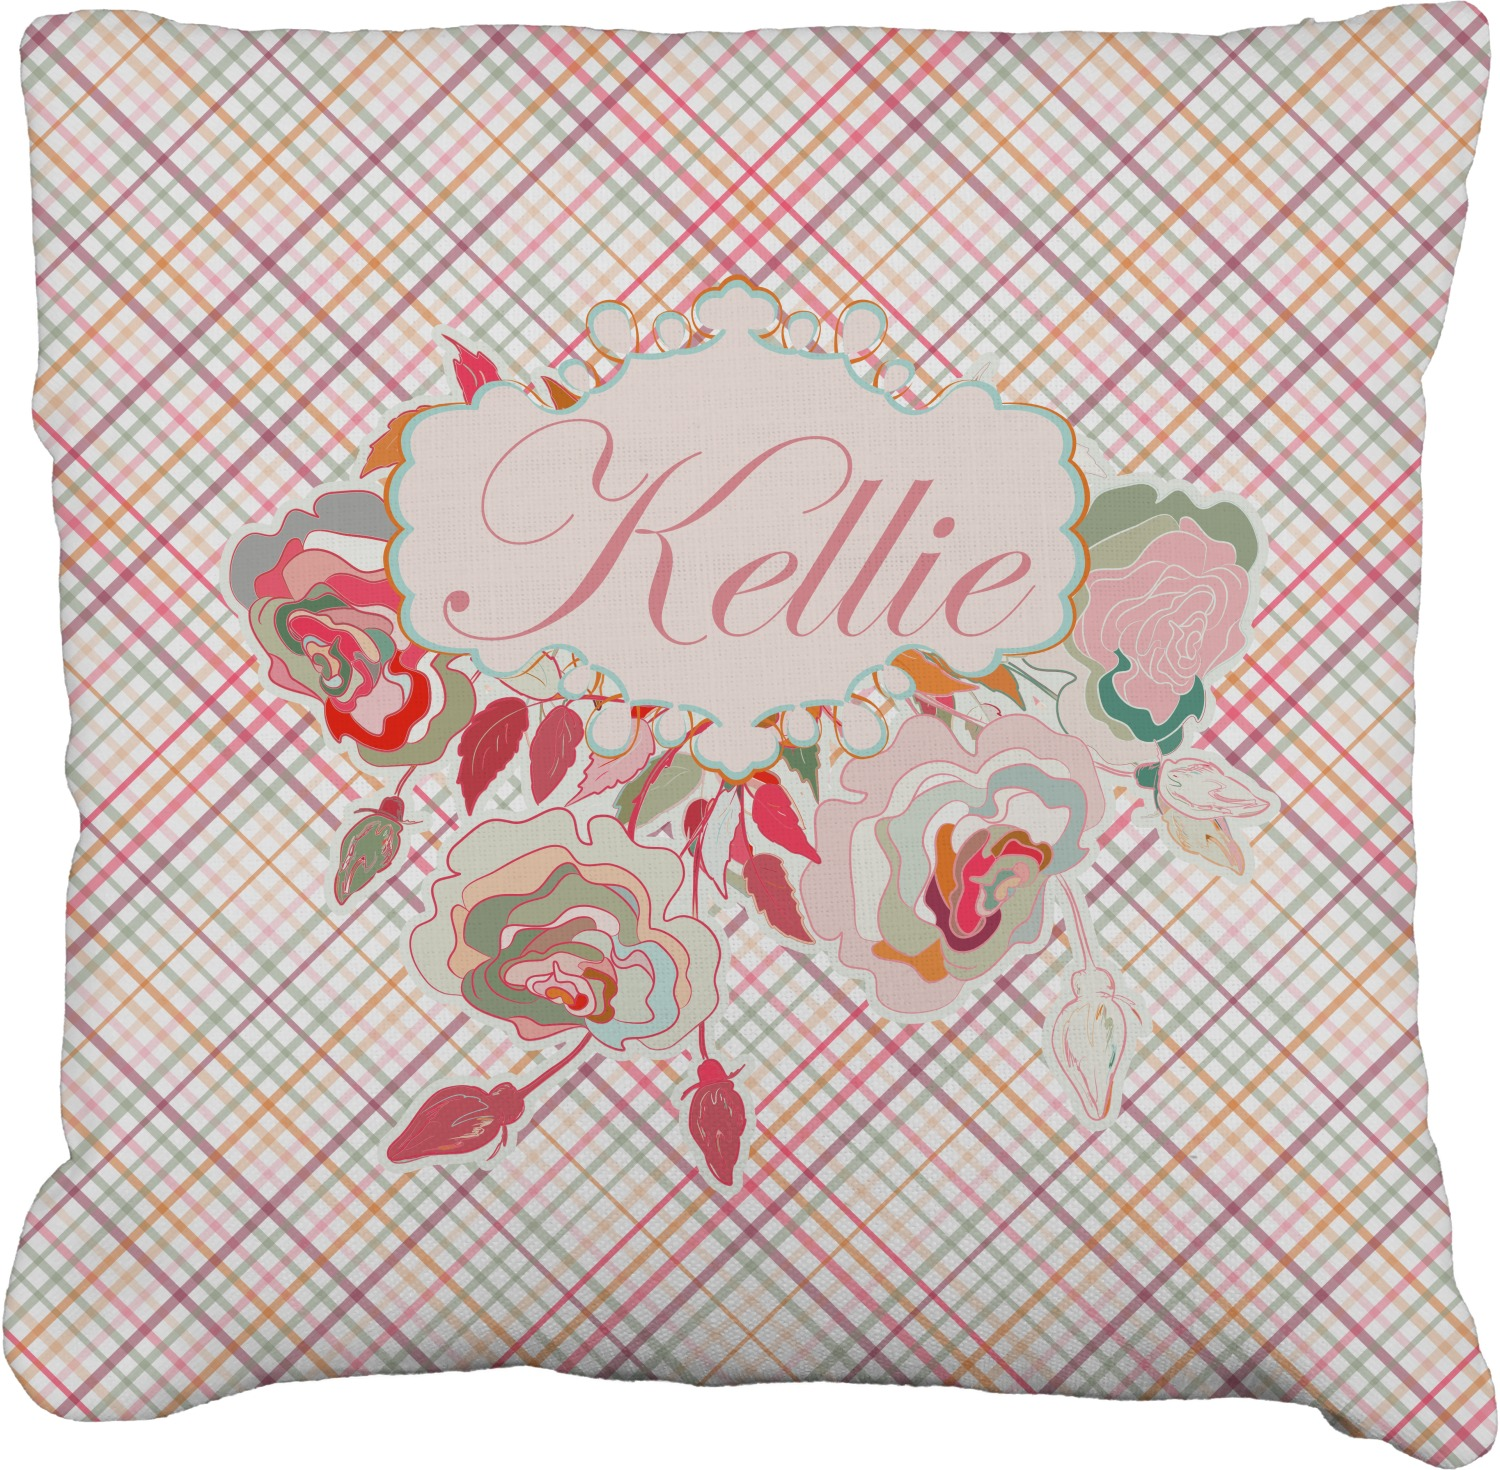 Modern Plaid Pillow : Modern Plaid & Floral Burlap Pillow 24